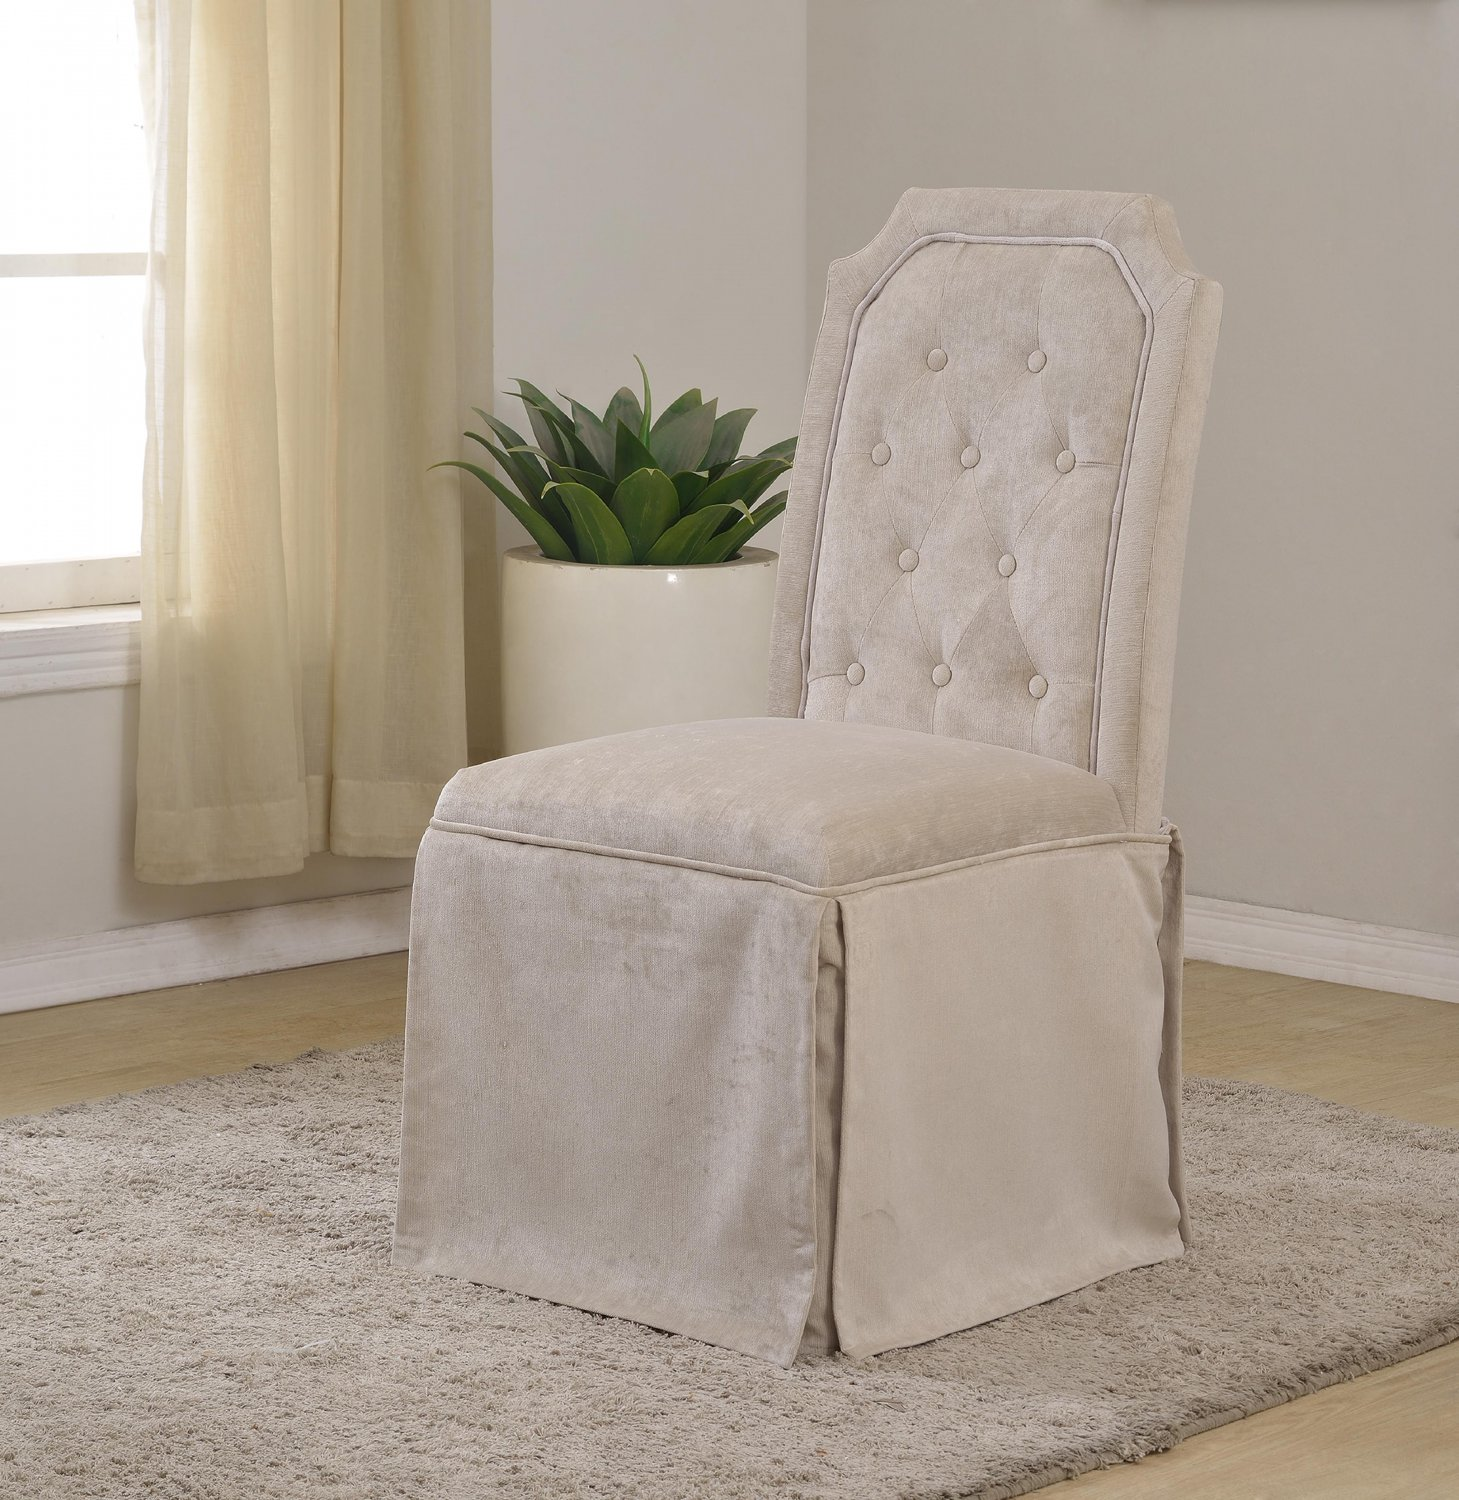 parsons chairs with skirt dining for sale yj058 upholstered pleated side set